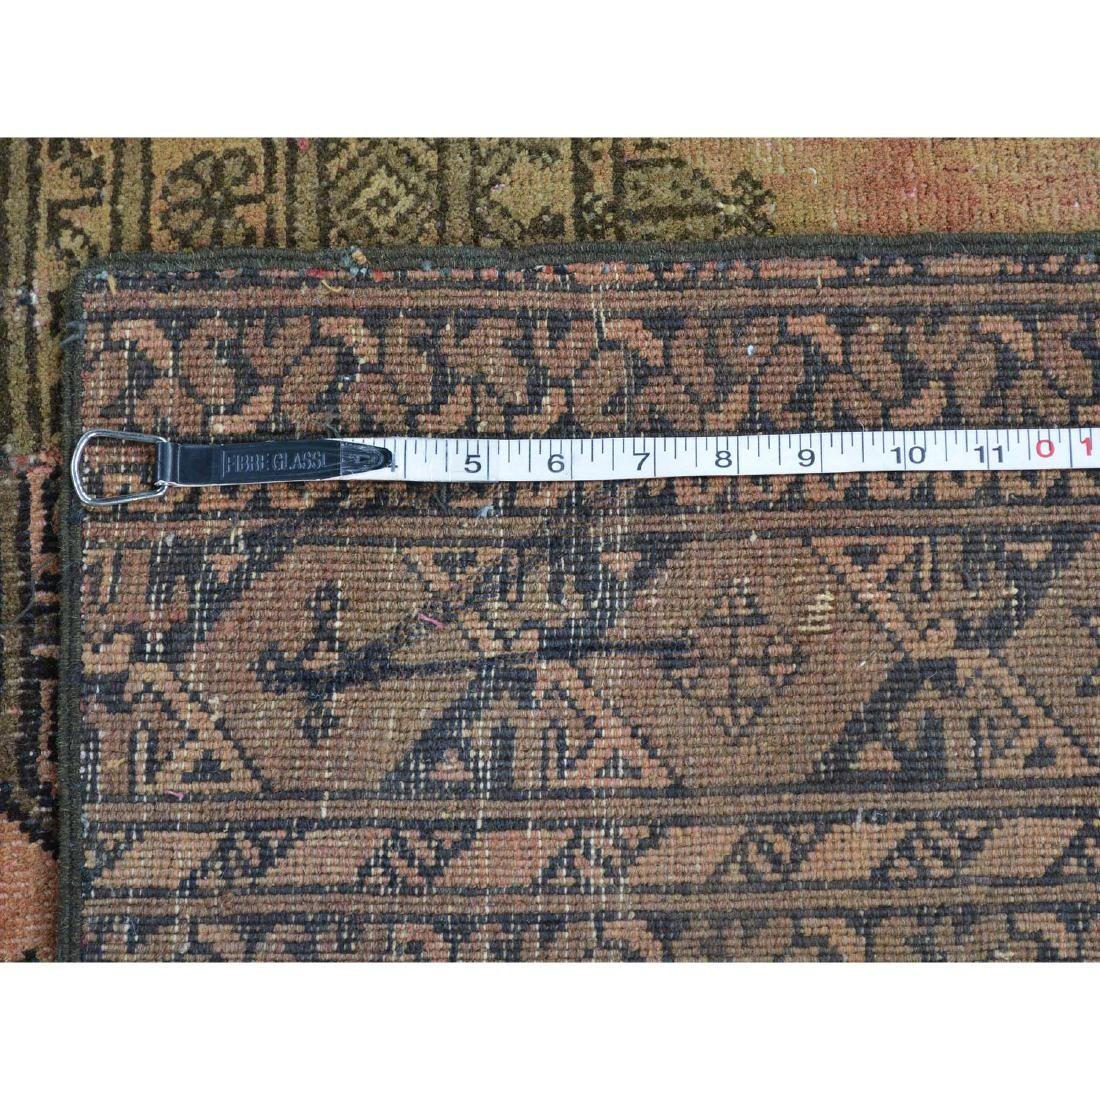 Pure Wool Afghan Patchwork Hand Knotted Rug 9x12 - 5